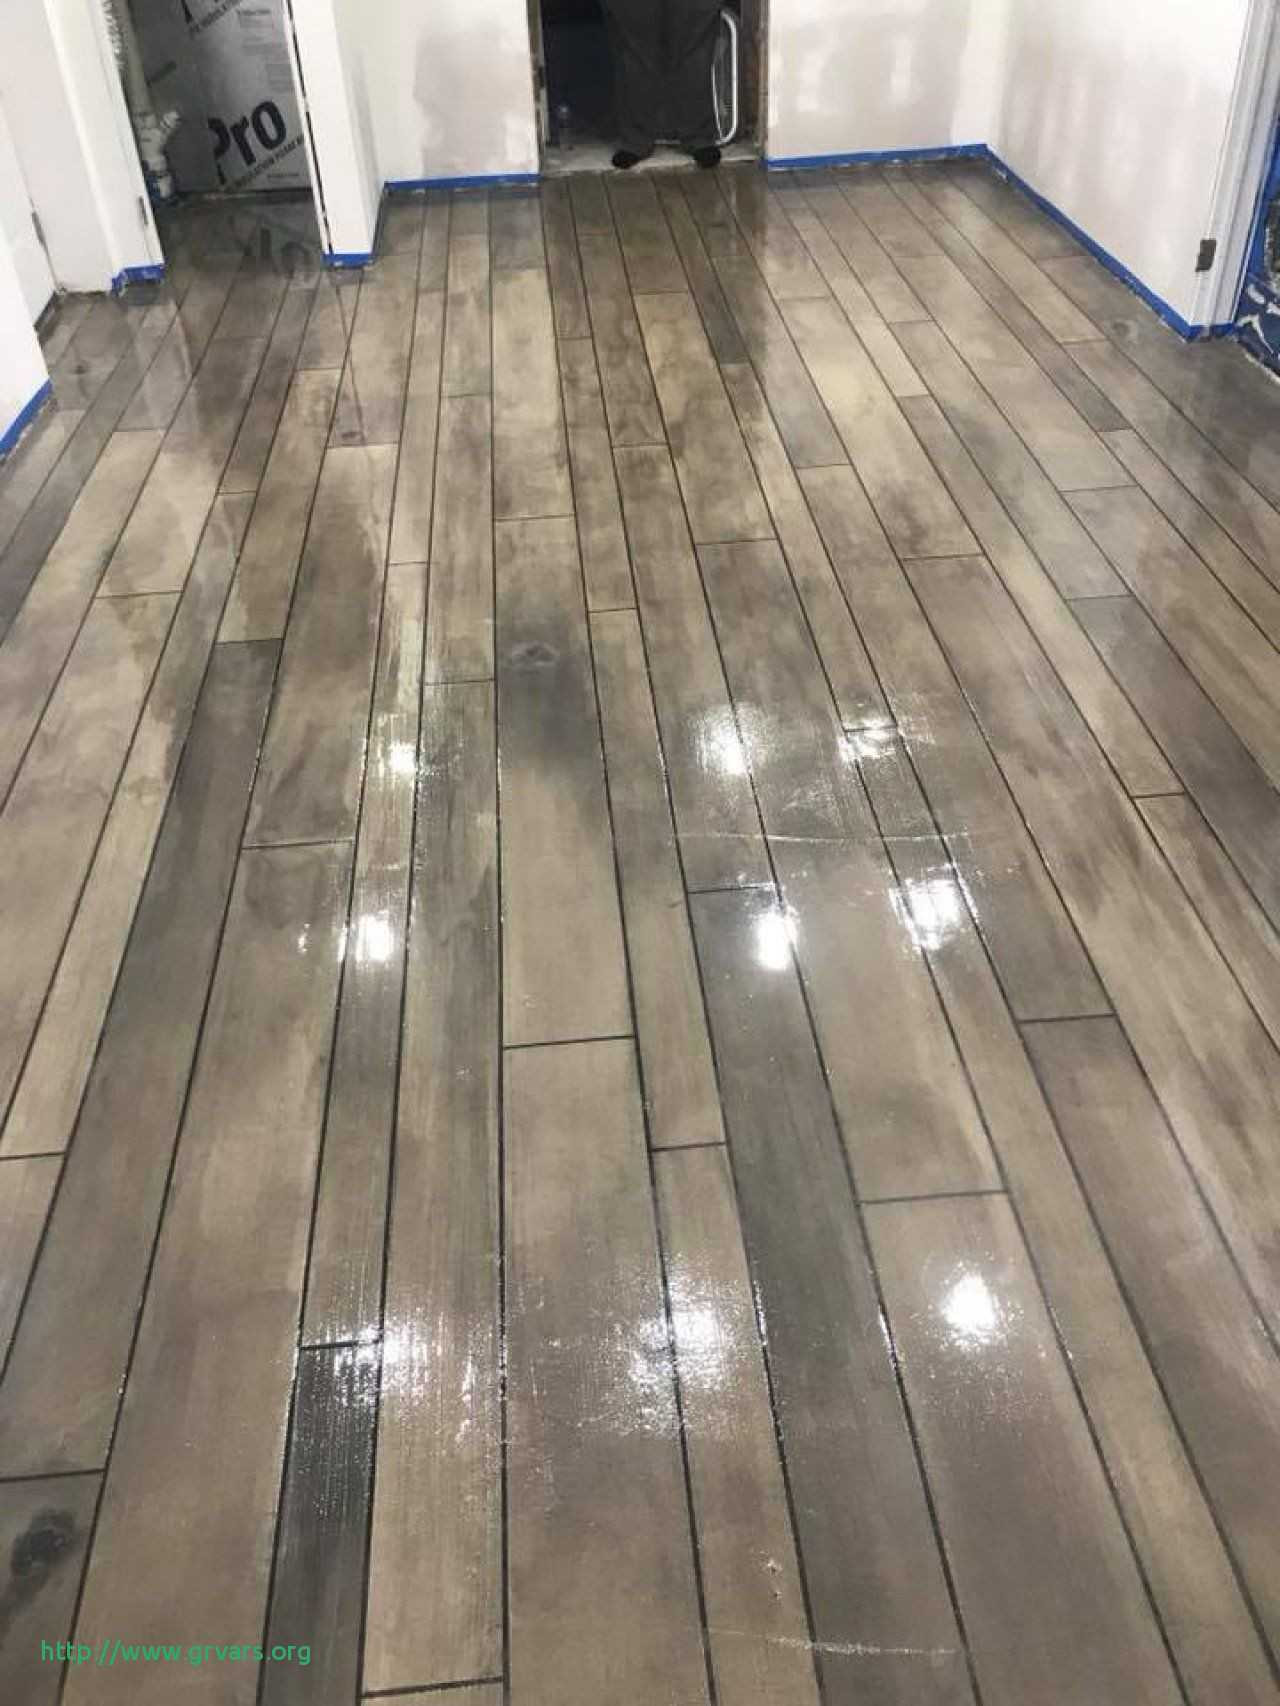 hardwood floor colors lowes of lowes flooring contractors charmant inspirational lowes roofing inside at lowe s lowes flooring contractors impressionnant flooring contractors rolling out the marmoleum floor in the theatre